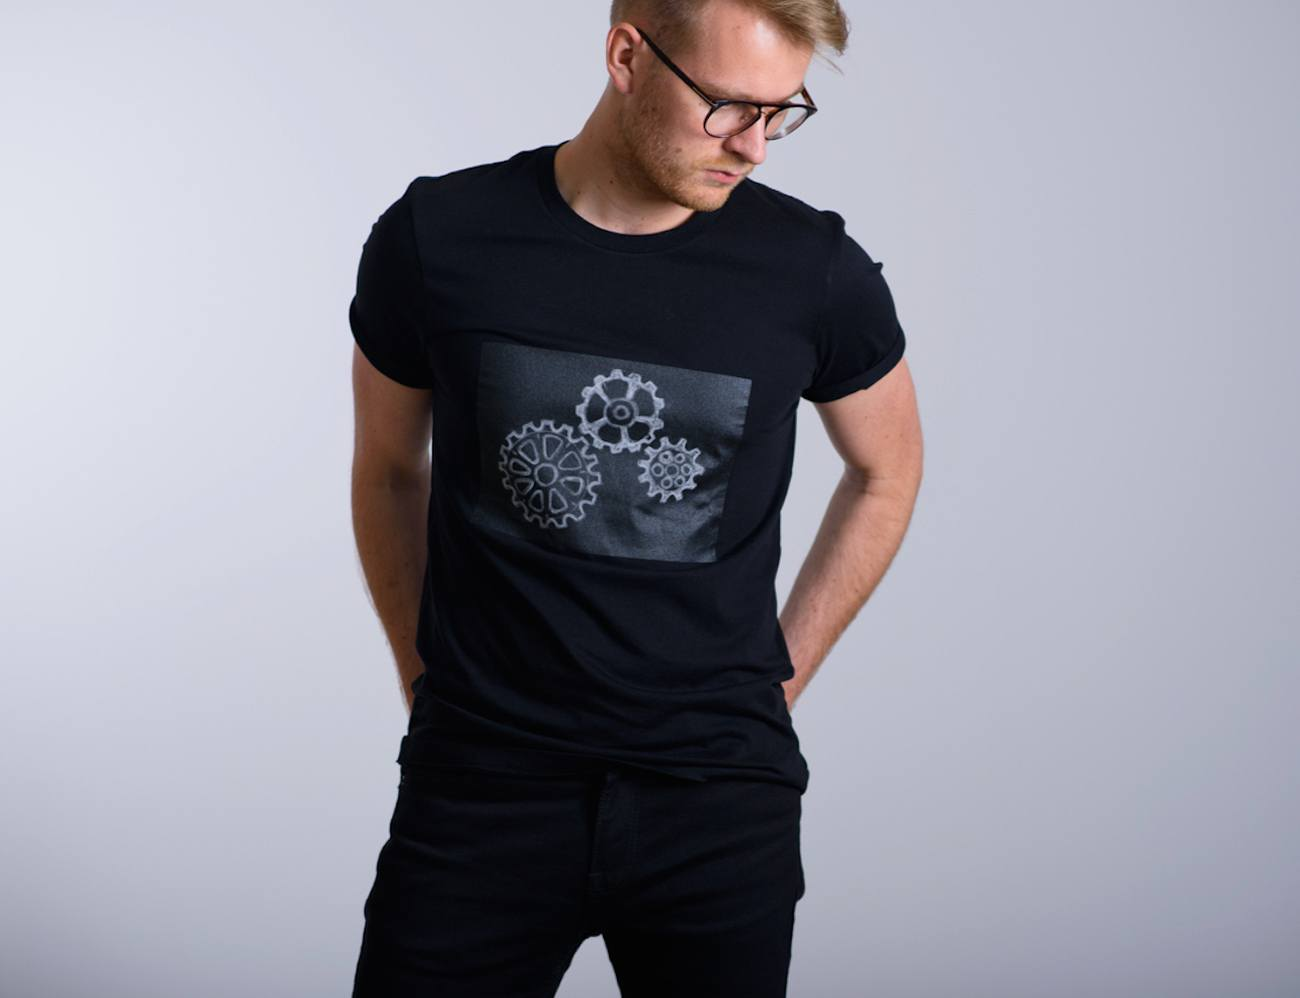 Challky – Streetwear T-shirt with a drawable surface